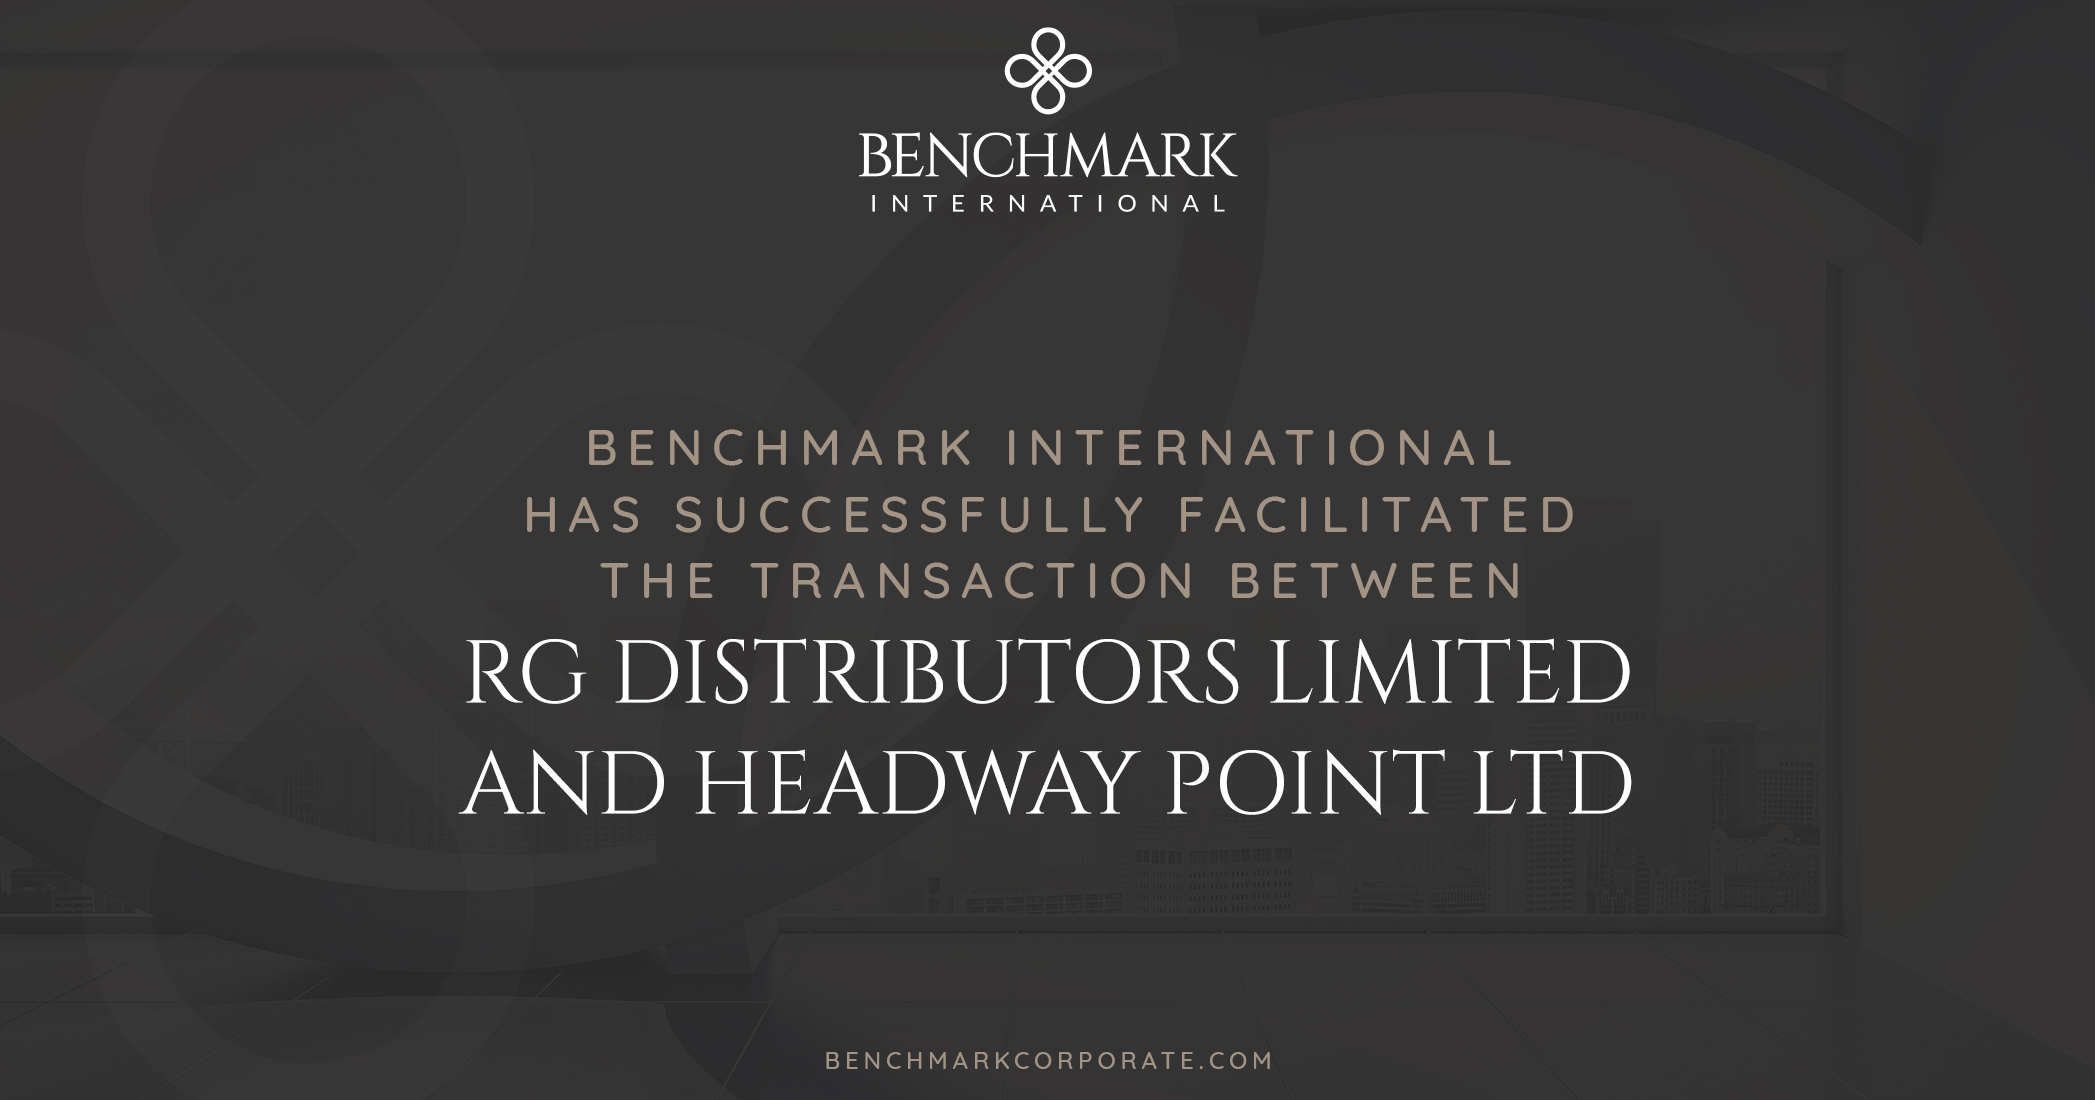 Benchmark International has Successfully Facilitated the Sale Between RG Distributors Limited and Headway Point Ltd